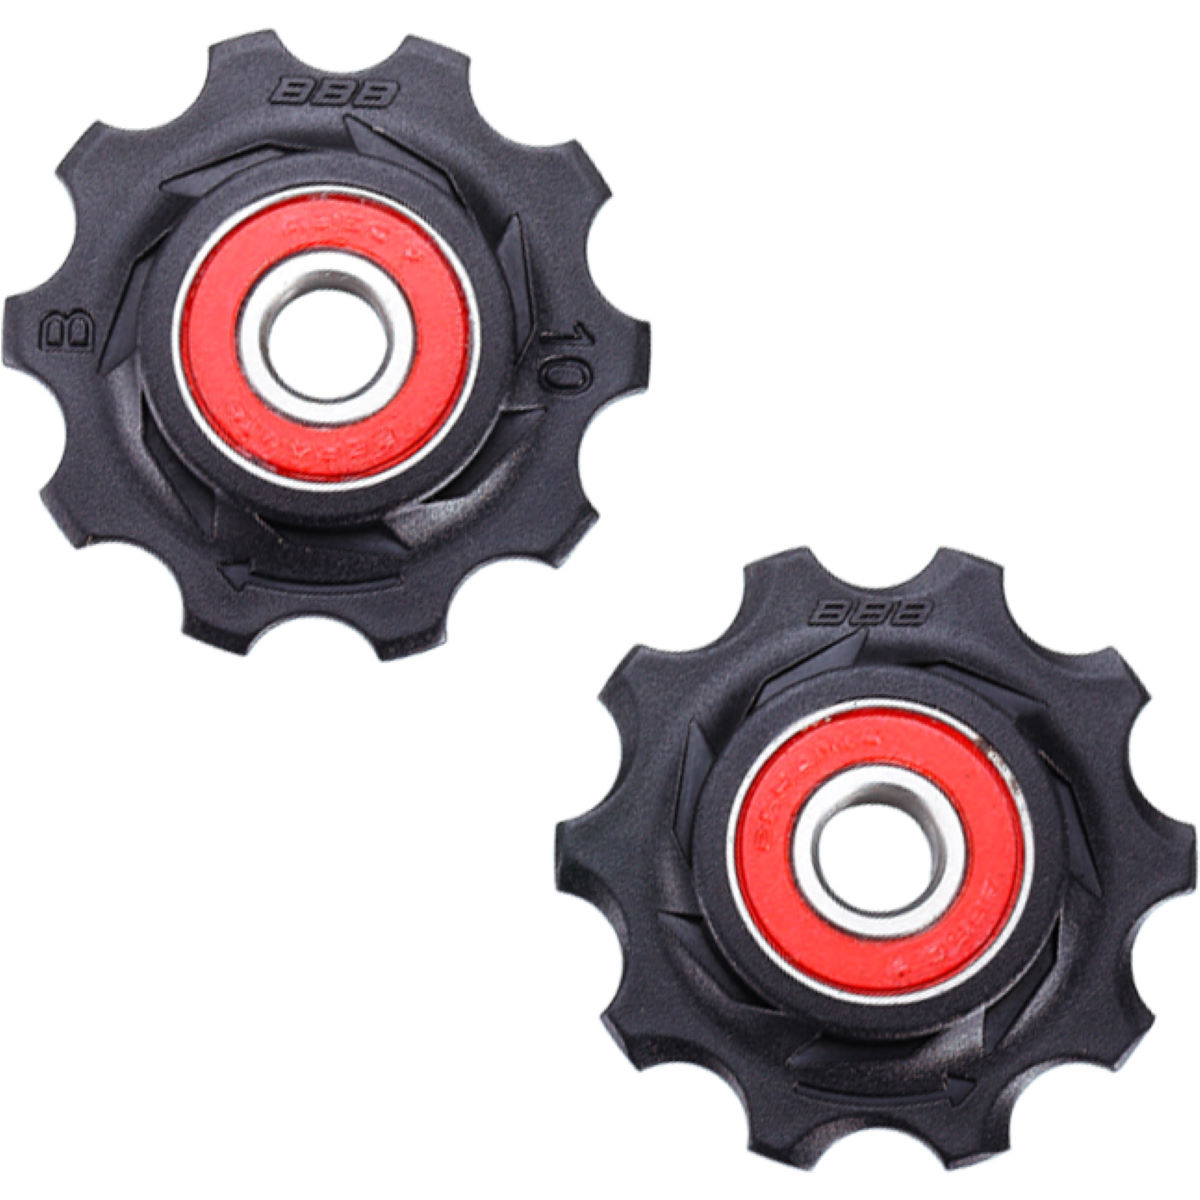 BBB BBB BDP-11 RollerBoys Ceramic Jockey Wheels   Jockey Wheels